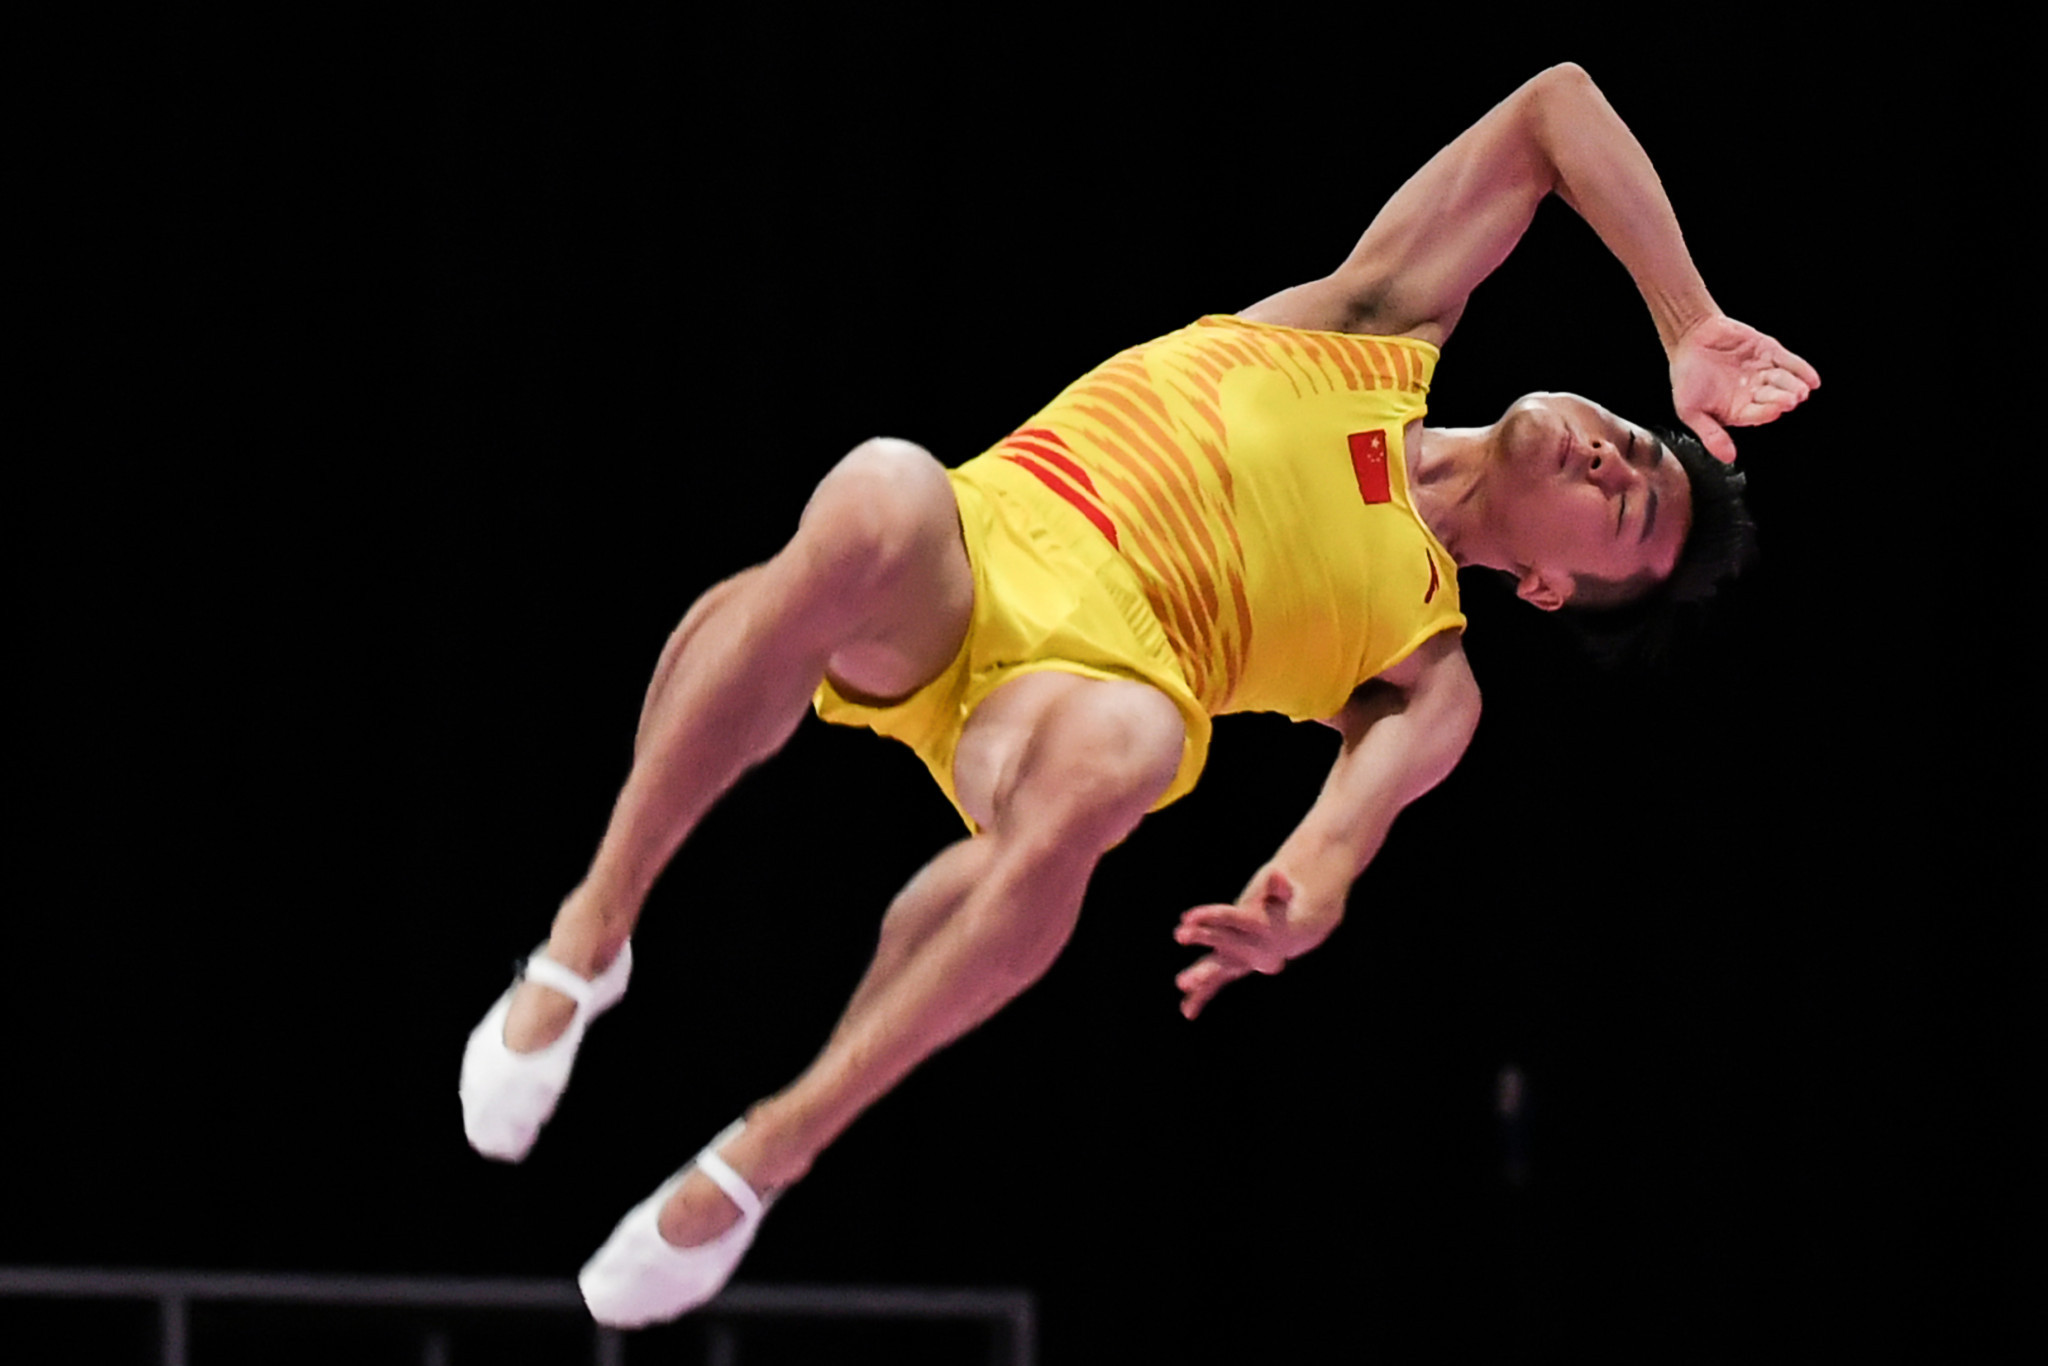 Gao Lei won the men's trampoline title ©Getty Images